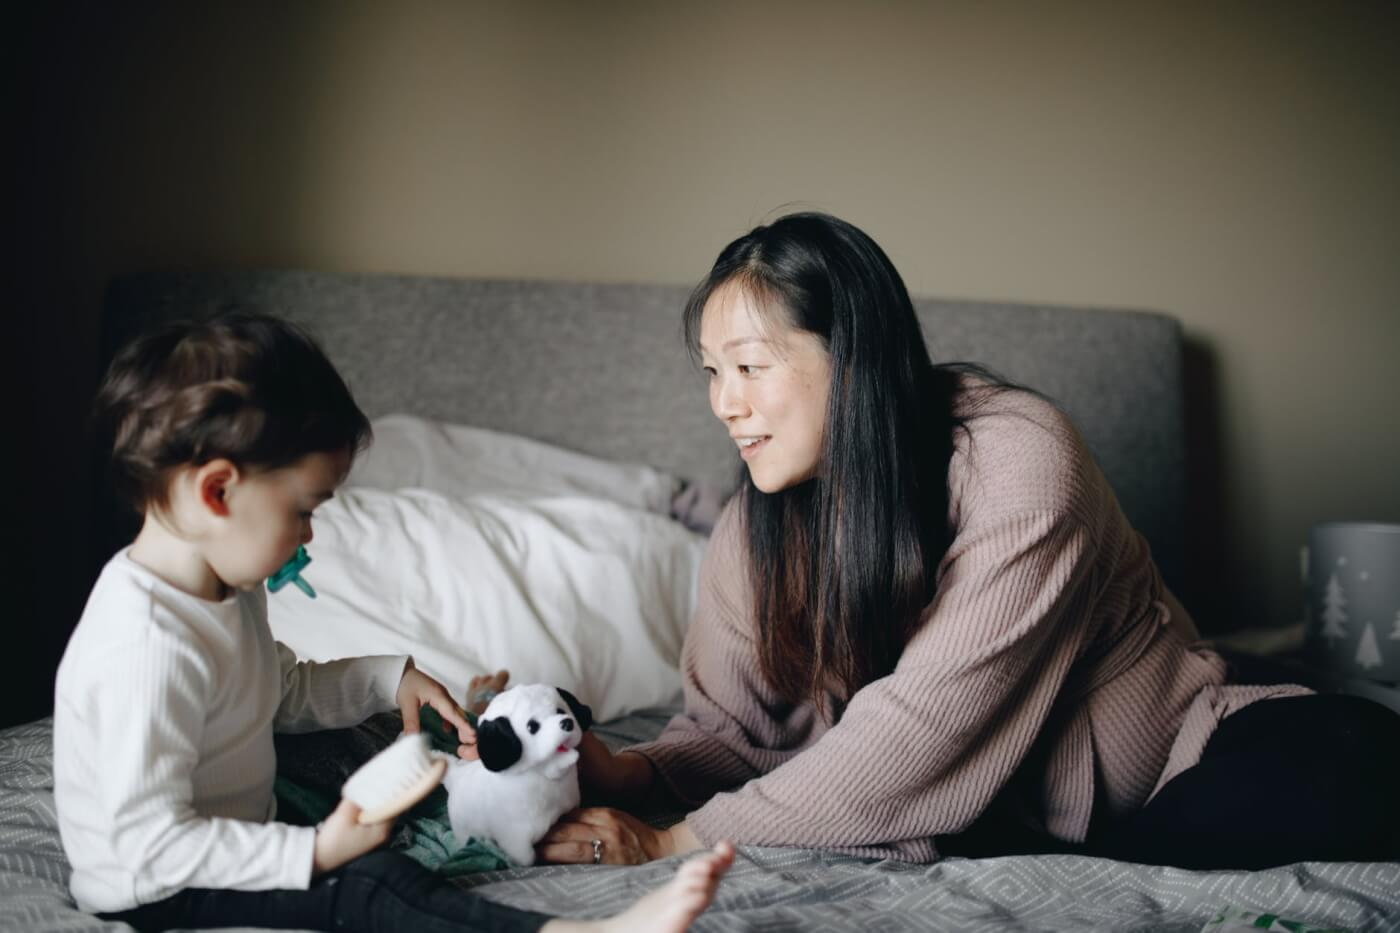 mom with her son playing with stuffed dog